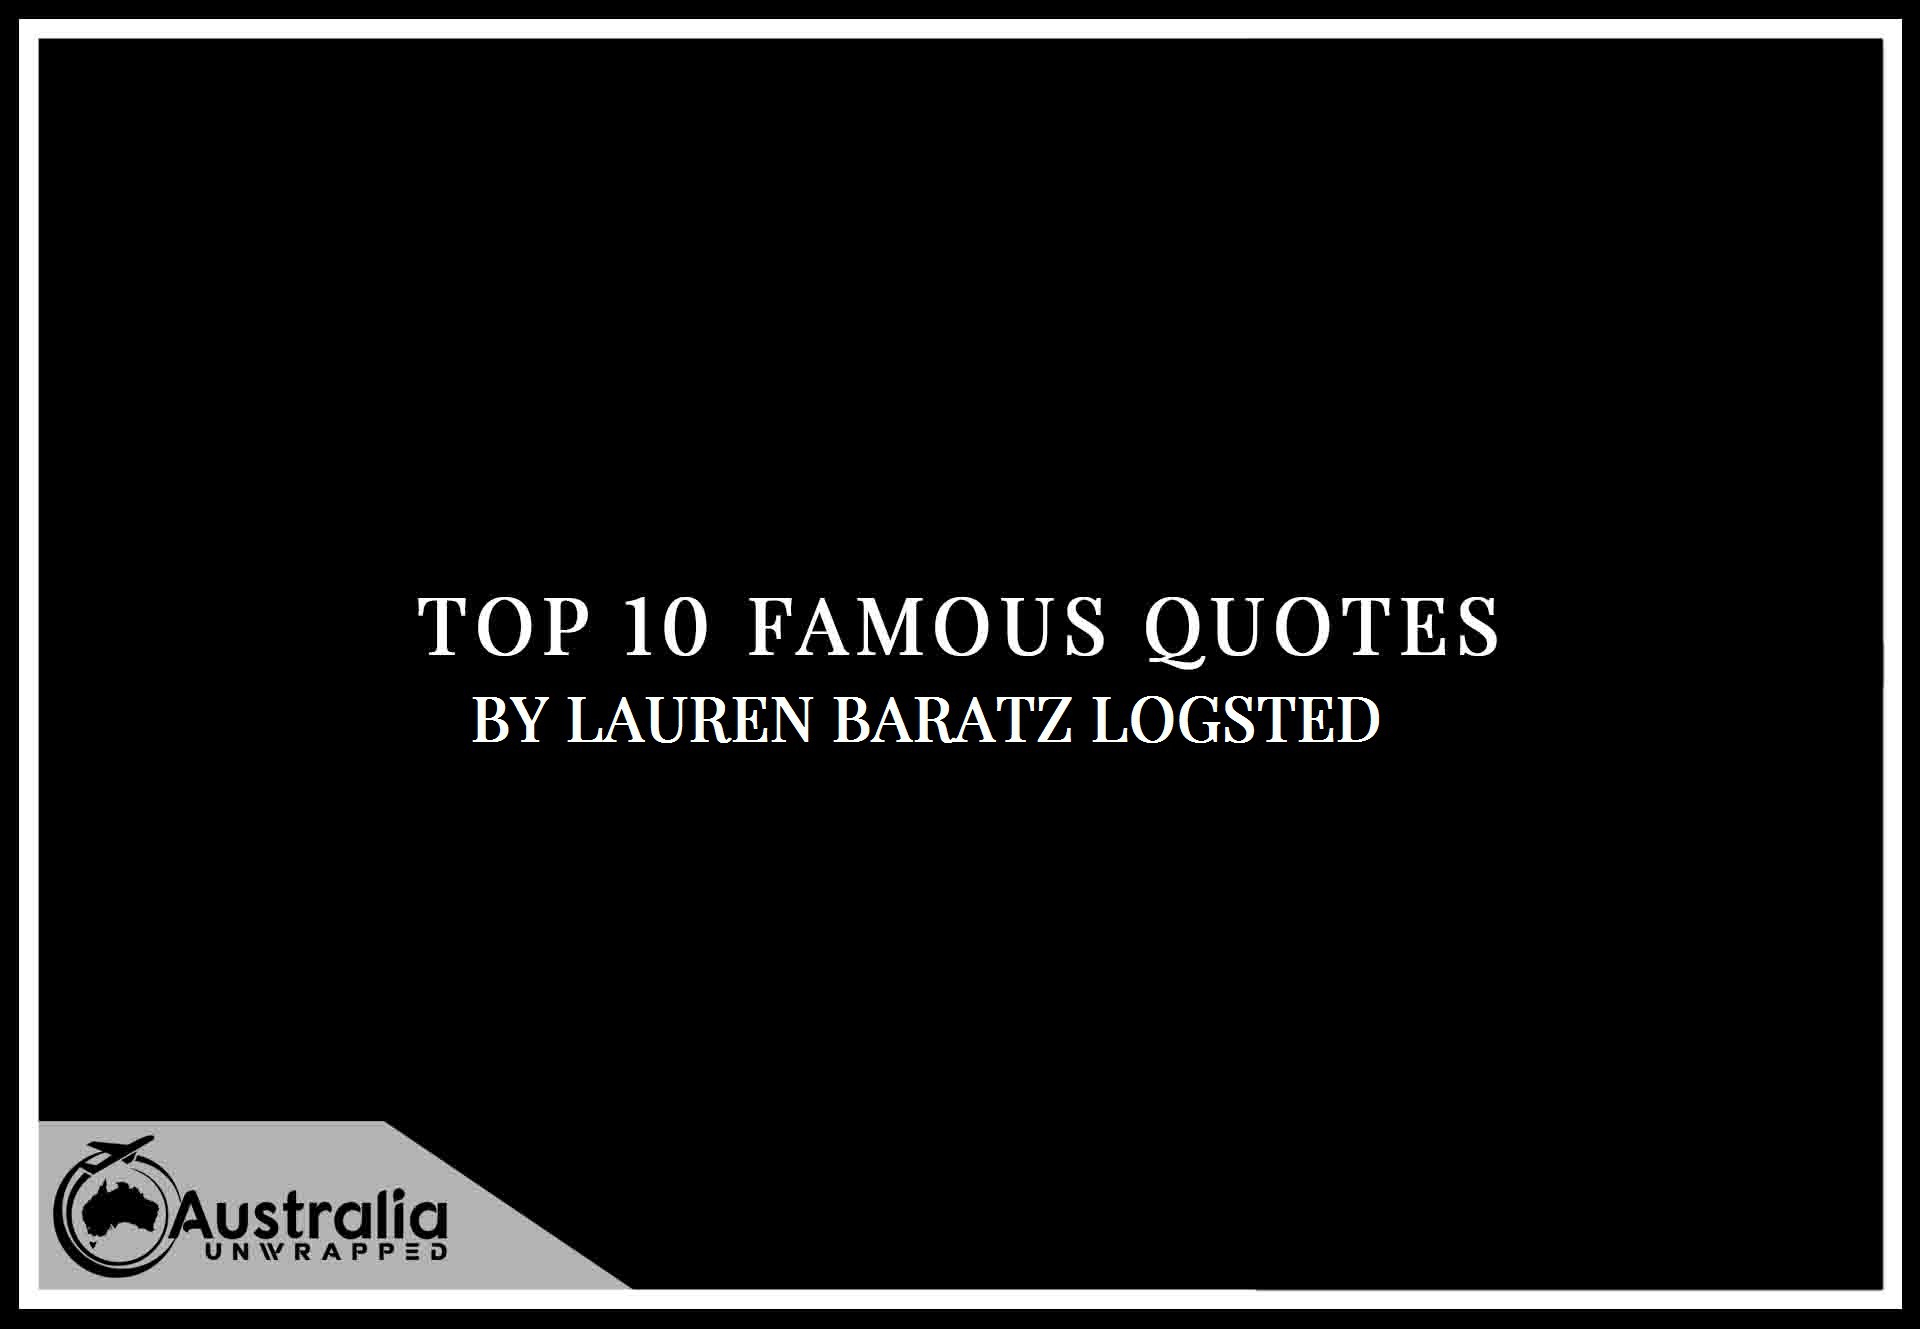 Lauren Baratz-Logsted's Top 10 Popular and Famous Quotes